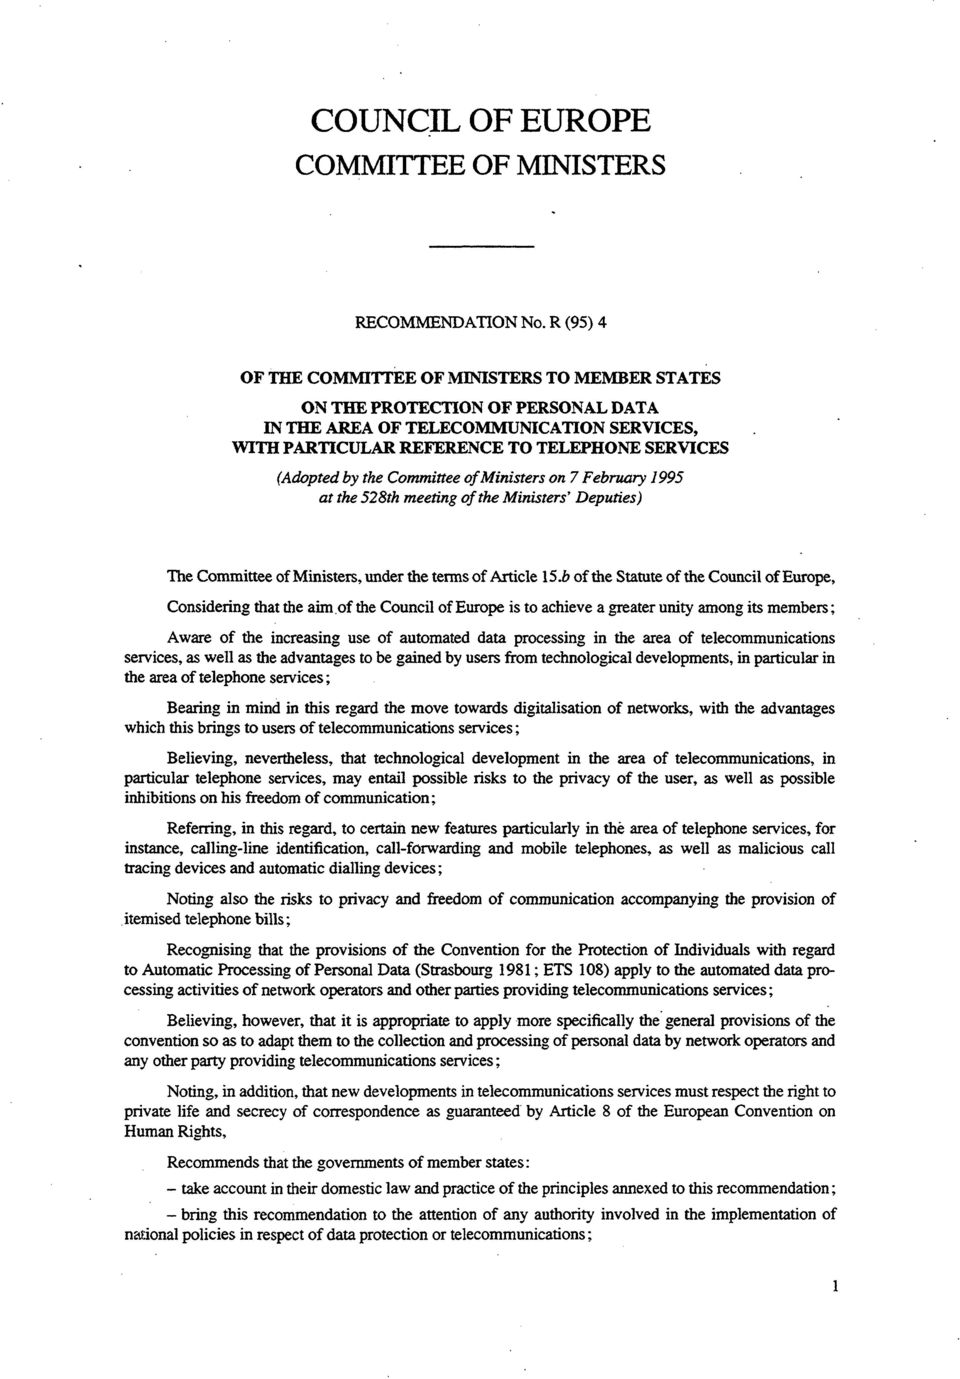 Committee of Ministers on 7 February 1995 at the 528th meeting of the Ministers' Deputies) The Committee of Ministers, under the terms of Article 15.